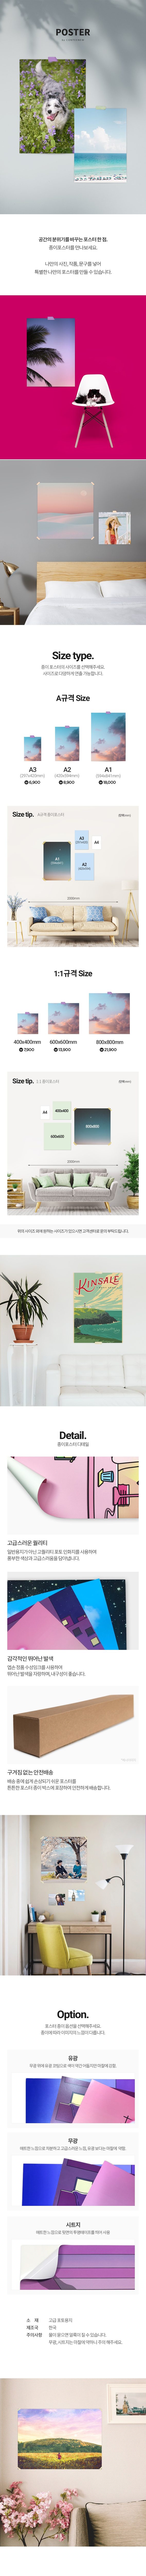 paper_poster_디테일